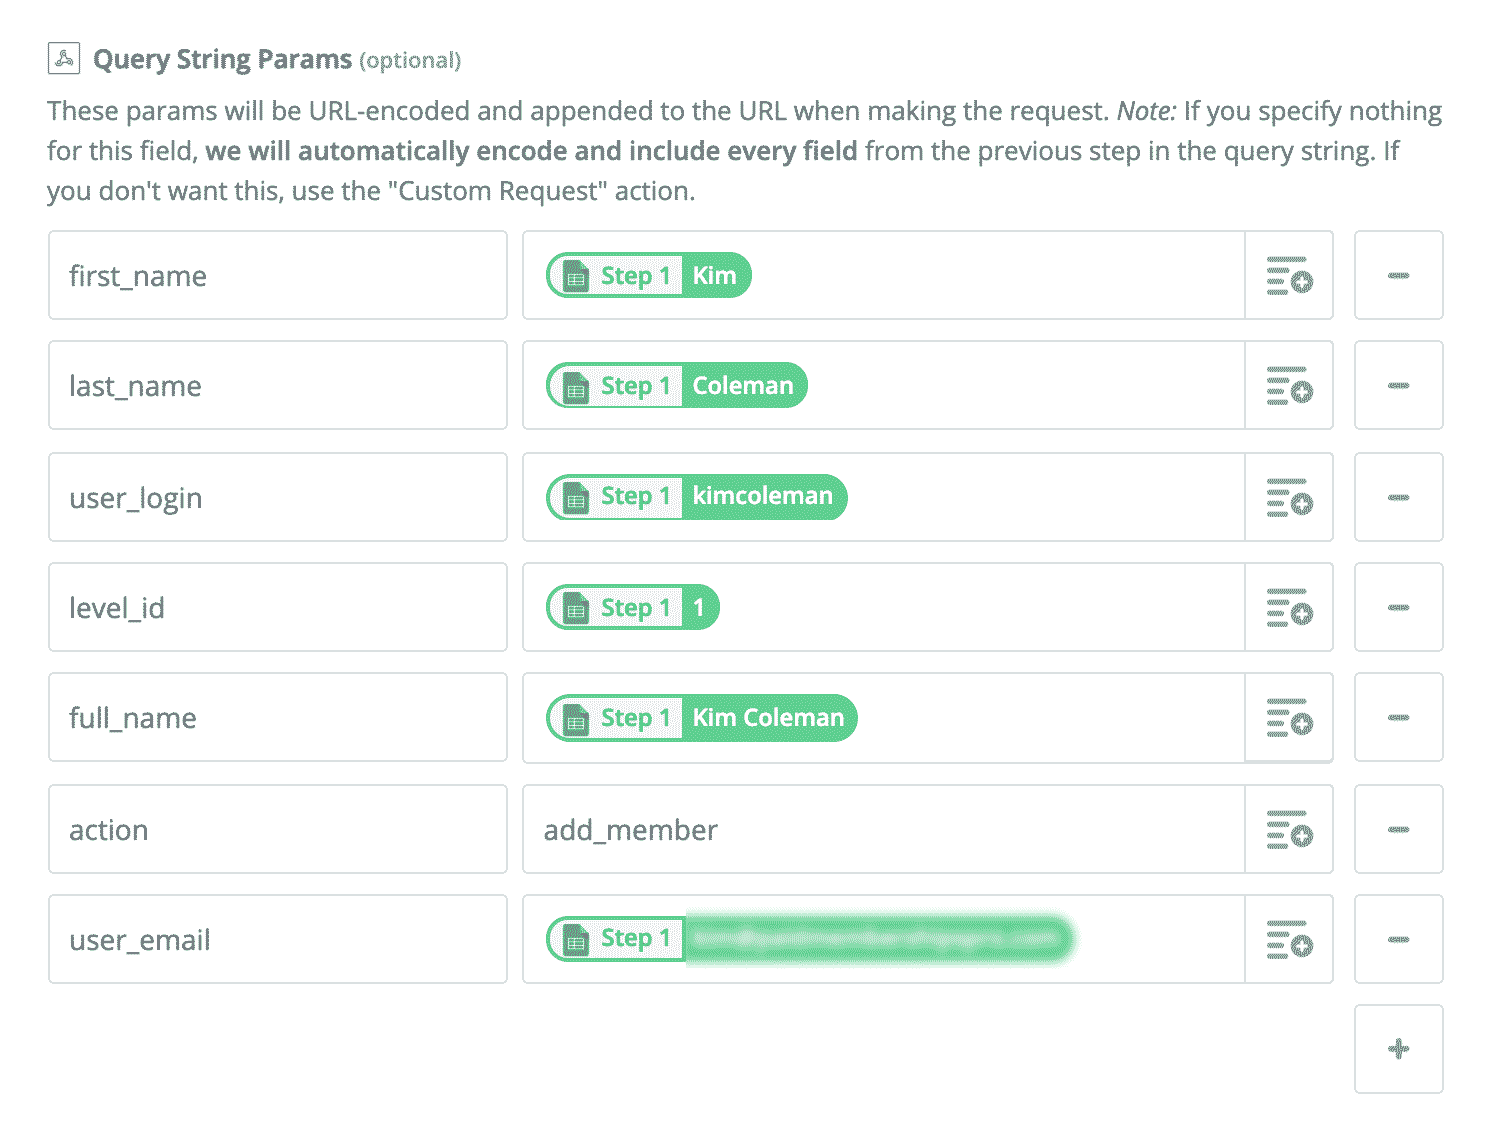 Zapier Action: Add Querystring Parameters